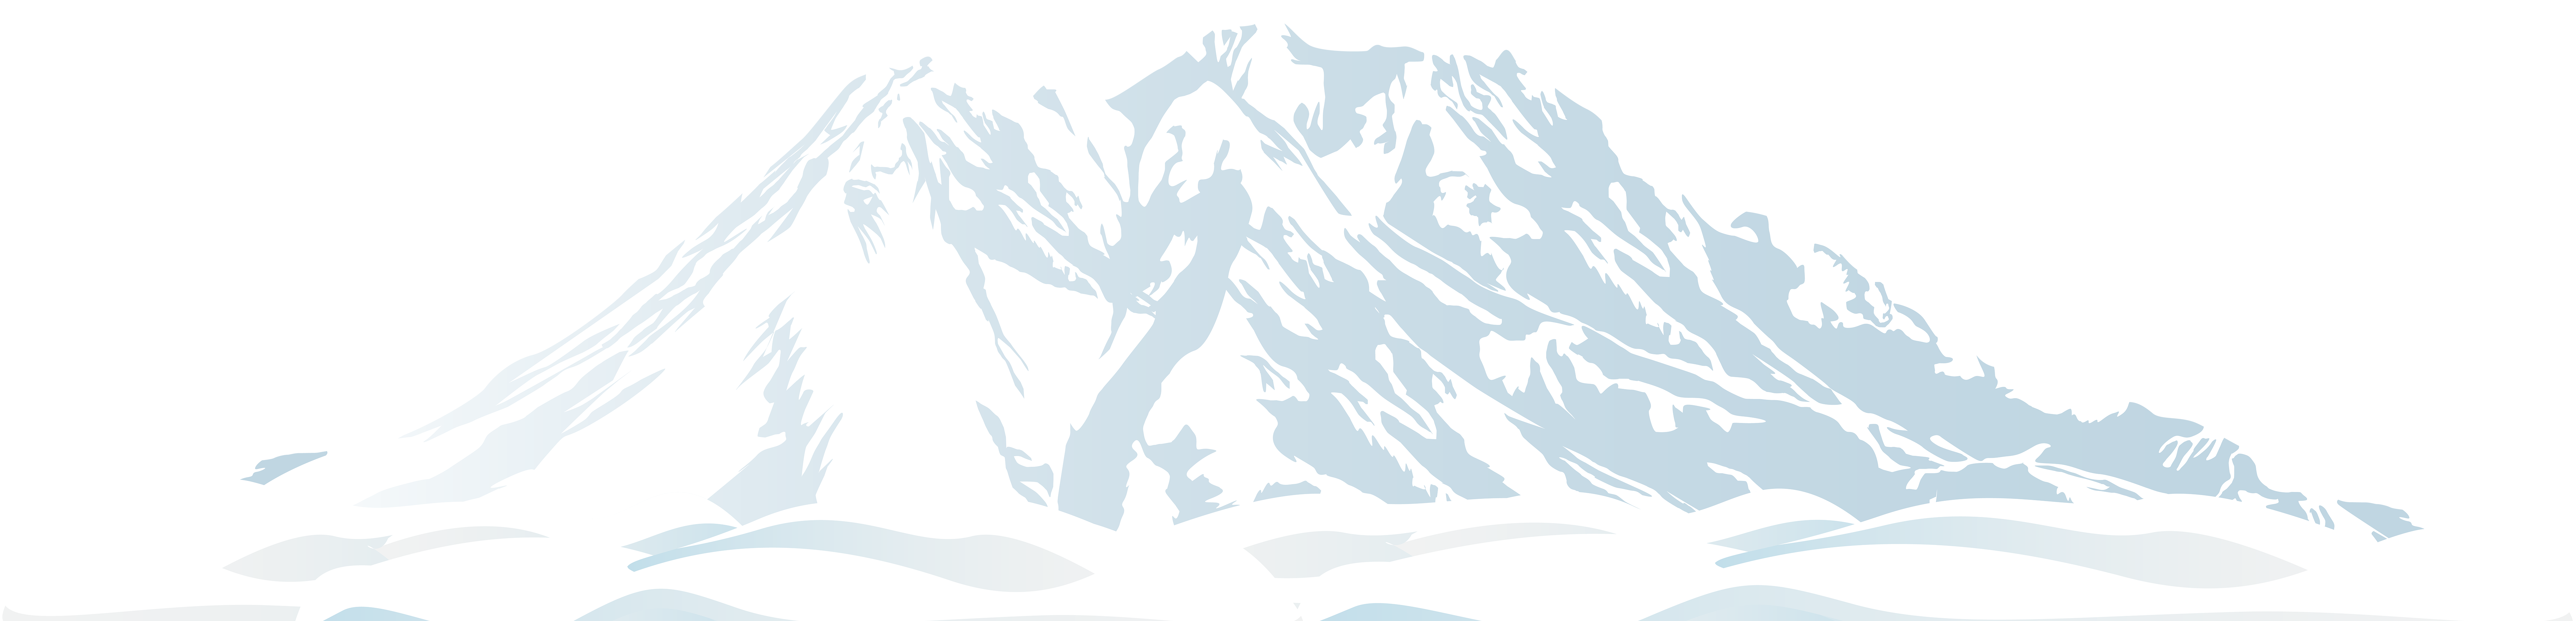 Snowy mountain png. Winter clip art image